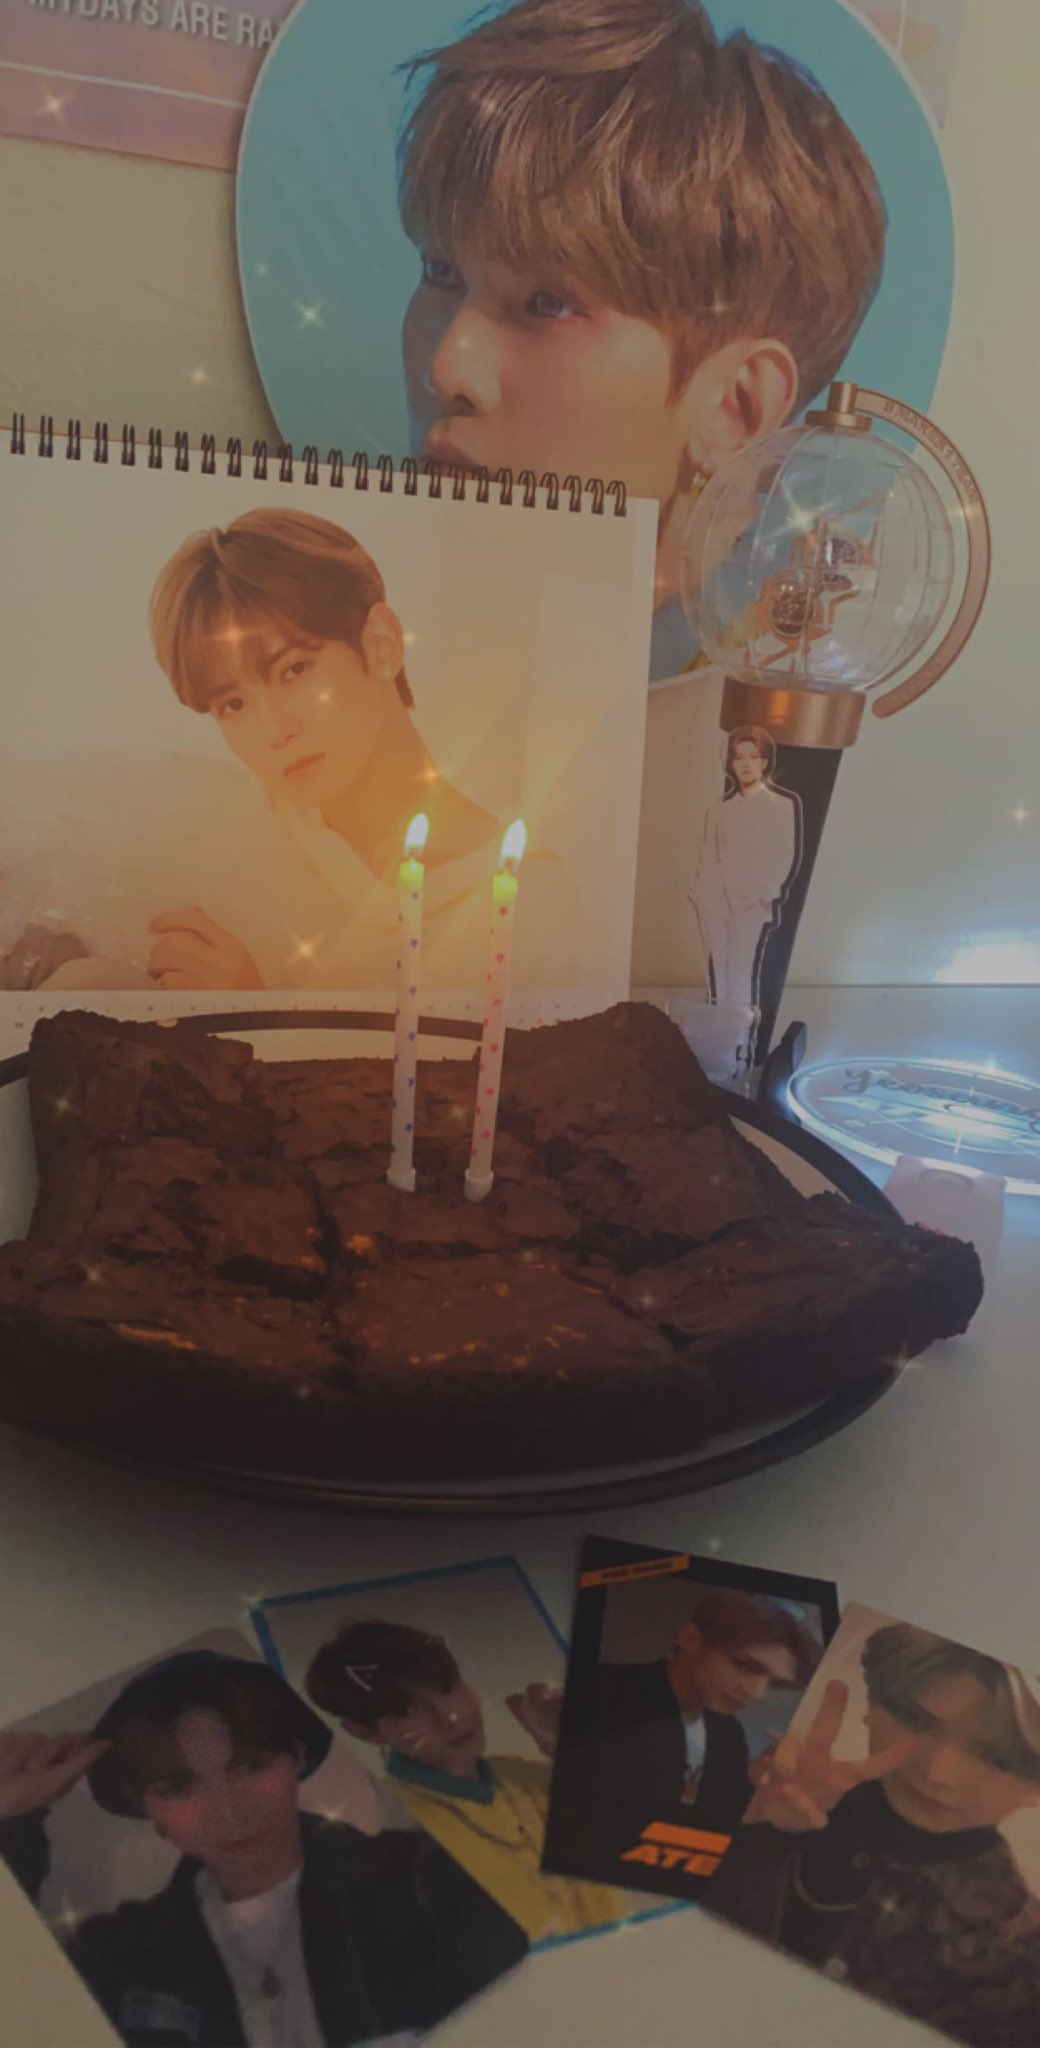 Celebrating the last 5 minutes of yeosangs birthday